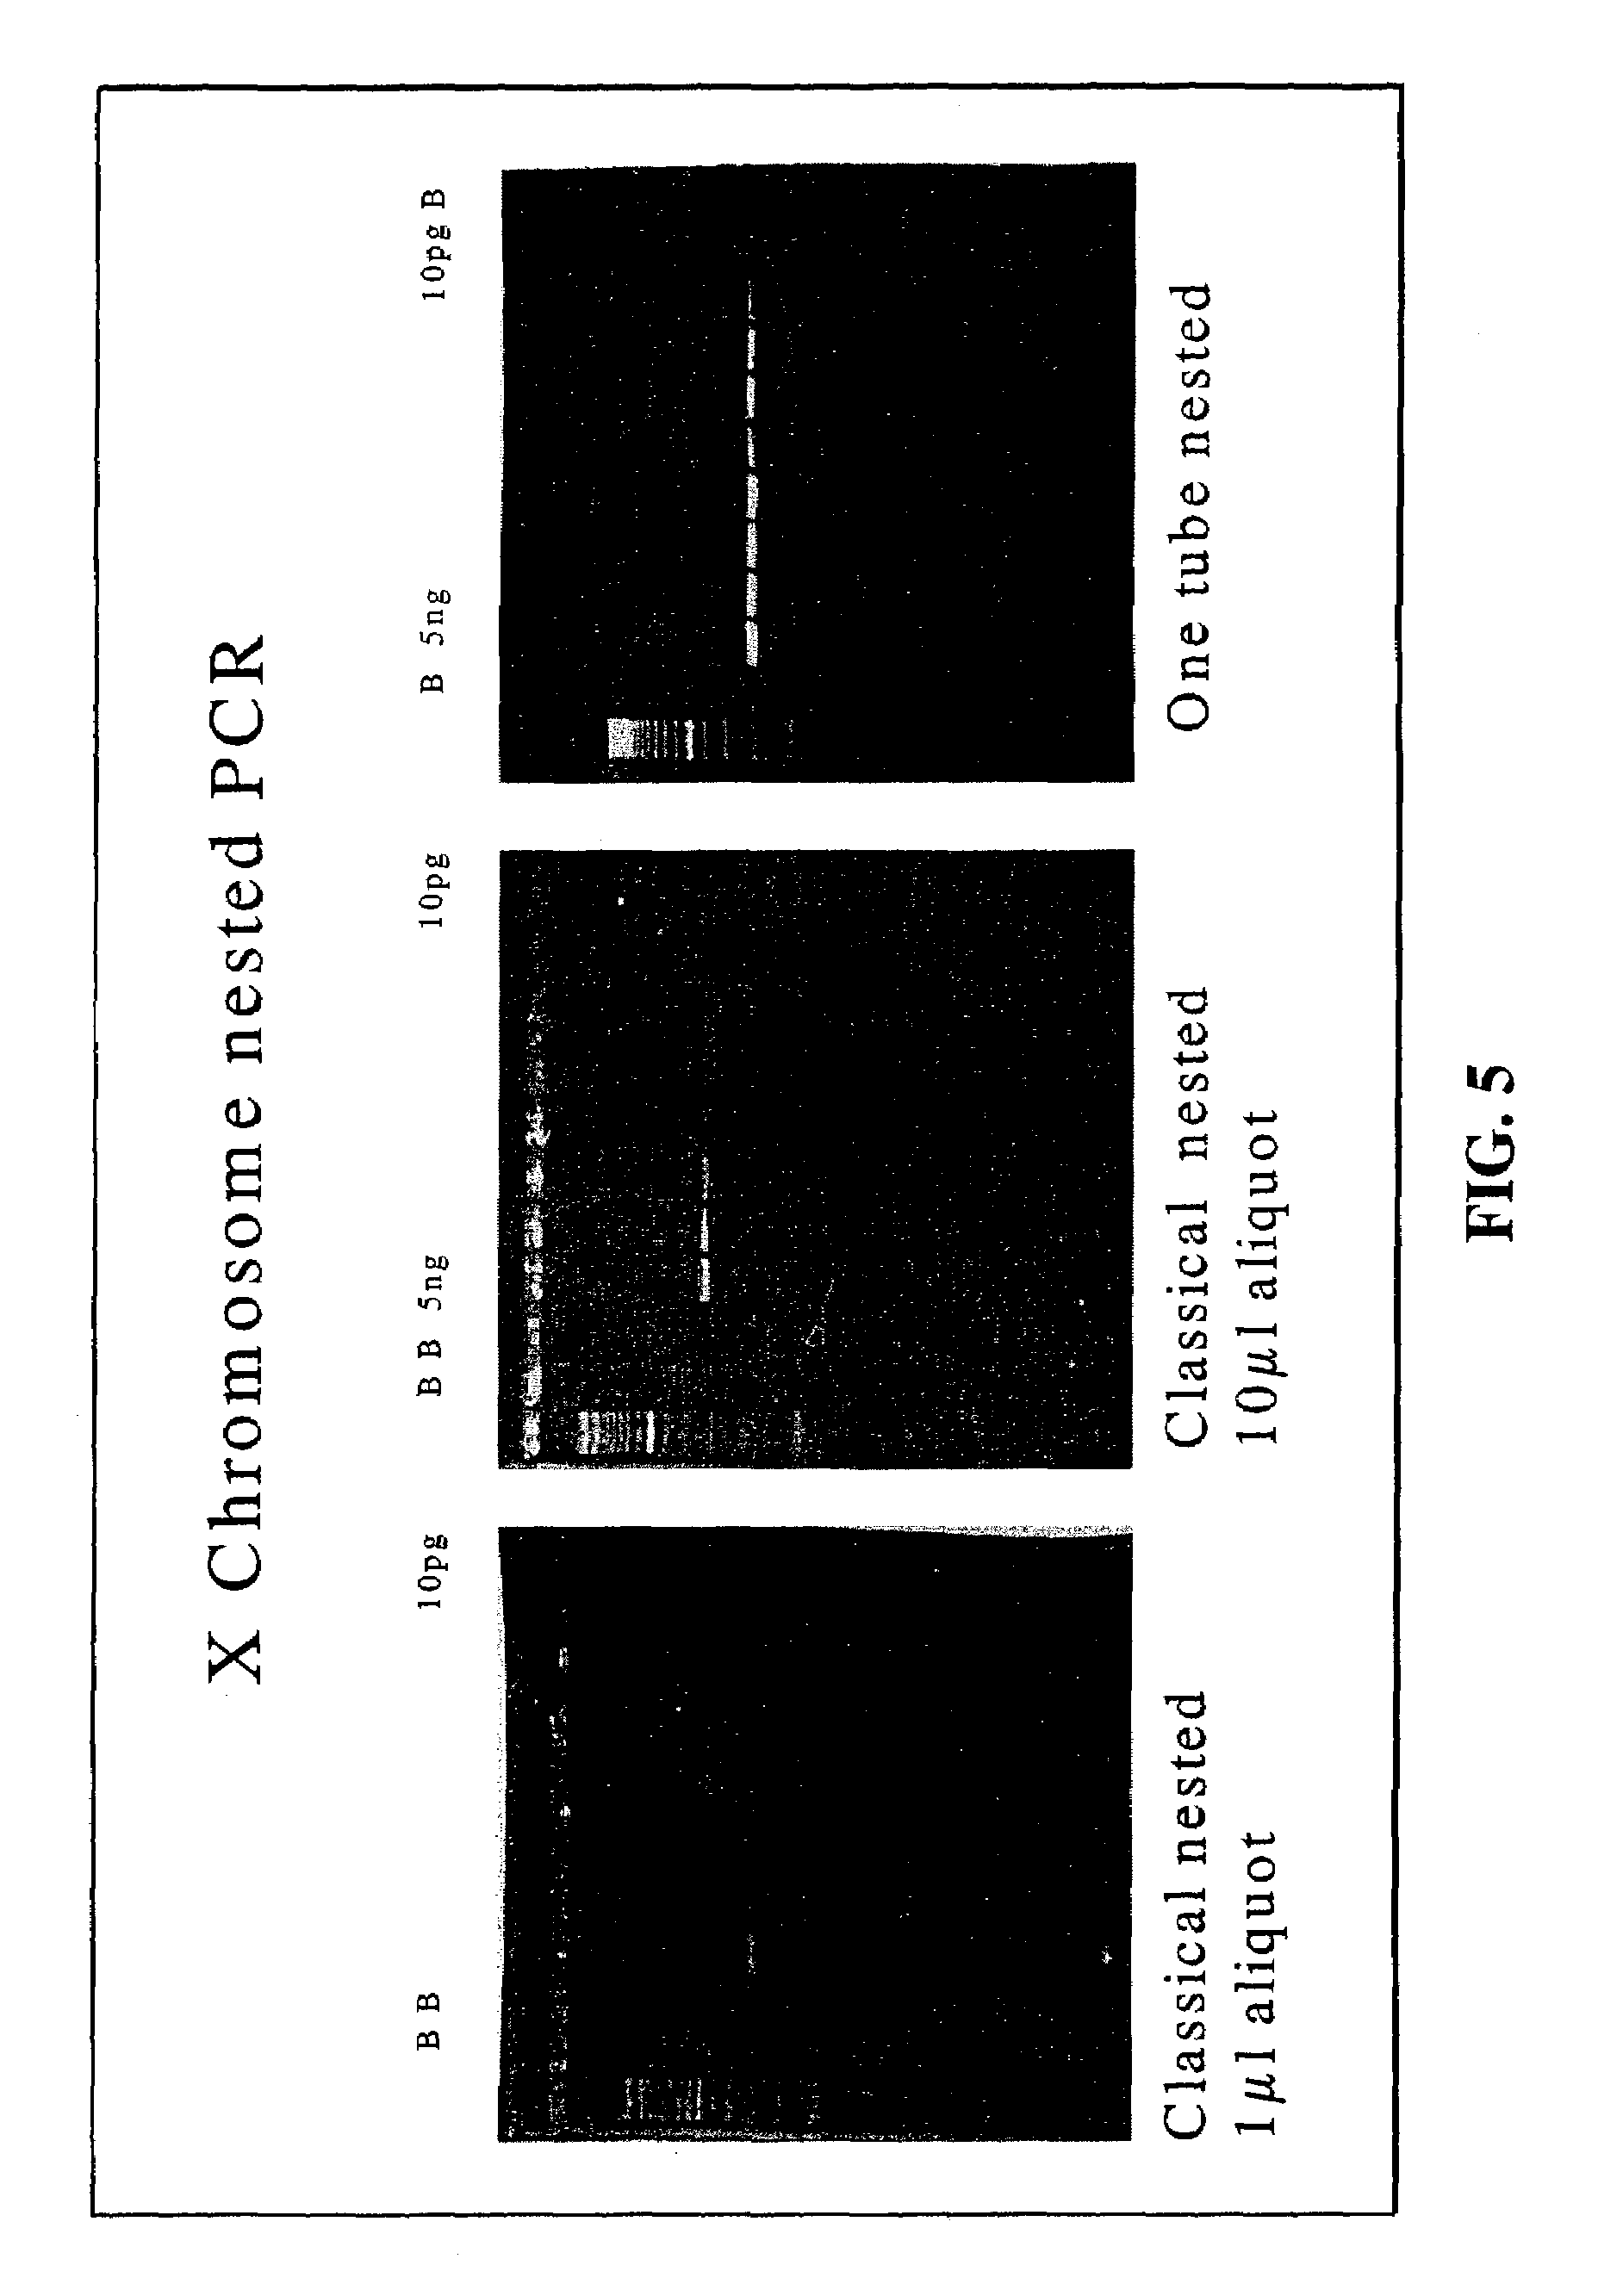 provisional patent template uspto - patent us7273730 nested pcr employing degradable primers